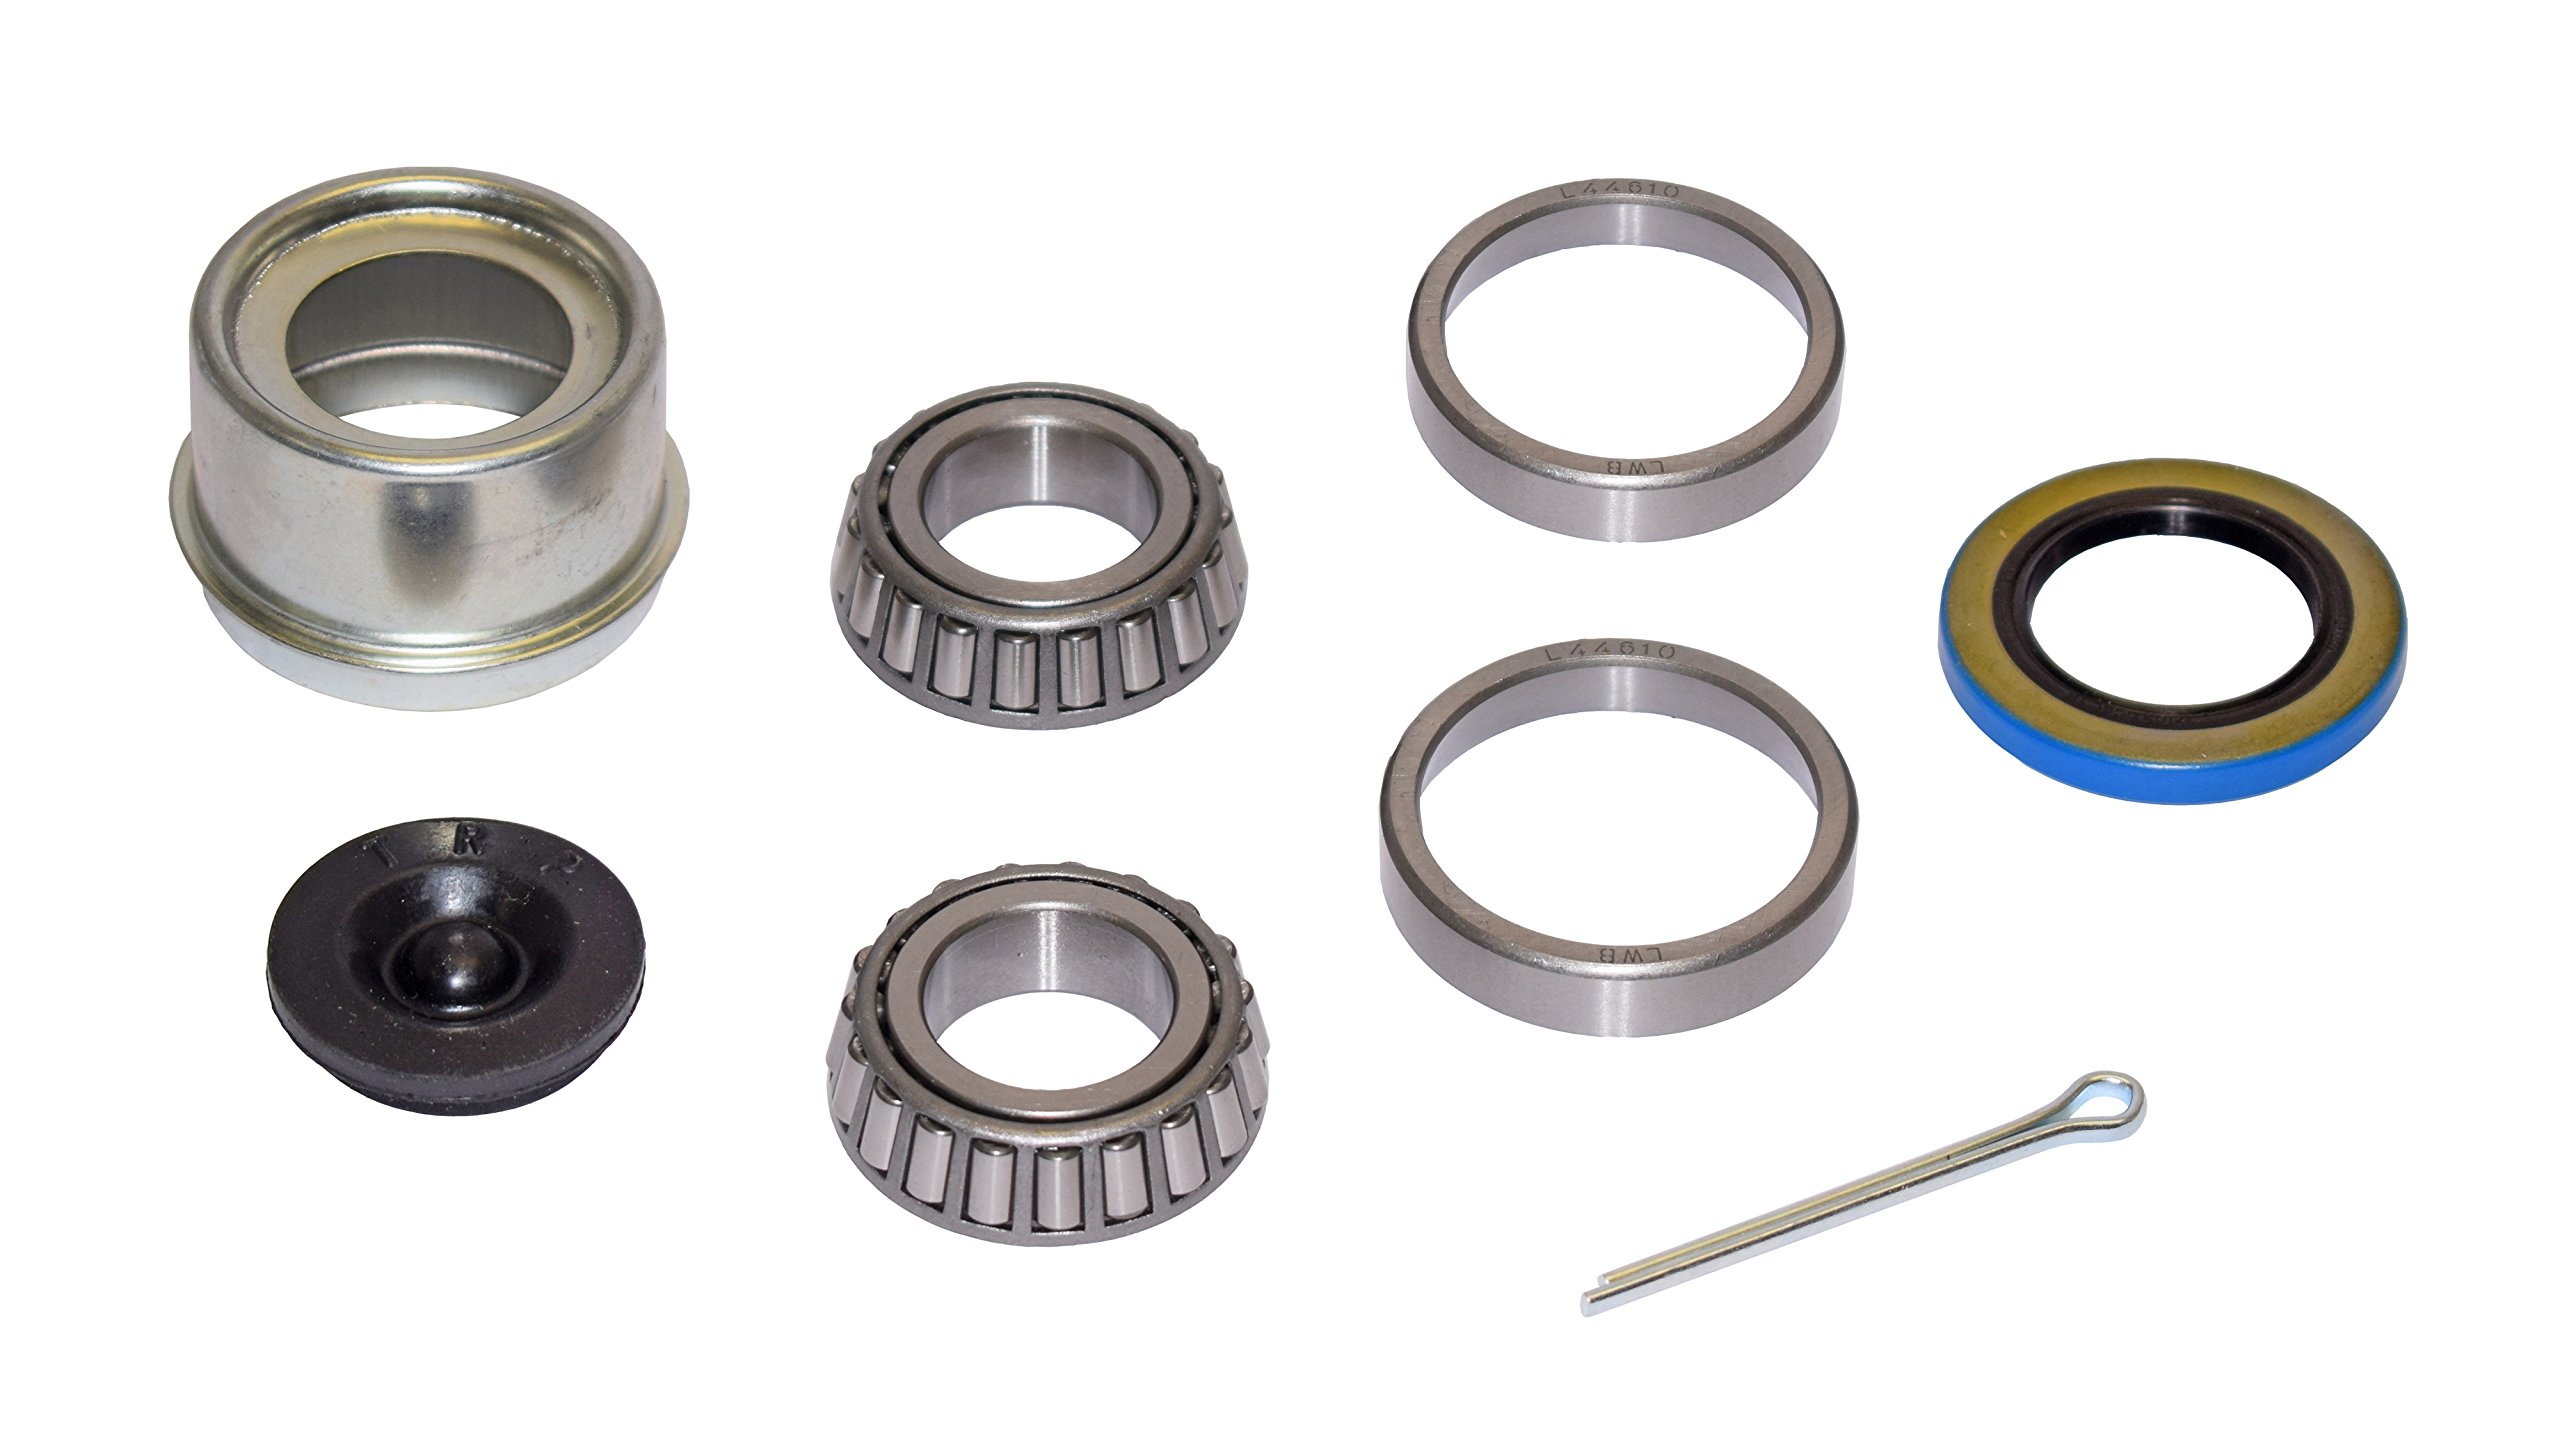 Rigid Hitch Trailer Bearing Repair Kit (280453-EZ) For 1-1/16 Inch Straight Spindle - Includes E-Z Lube Cap With Plug